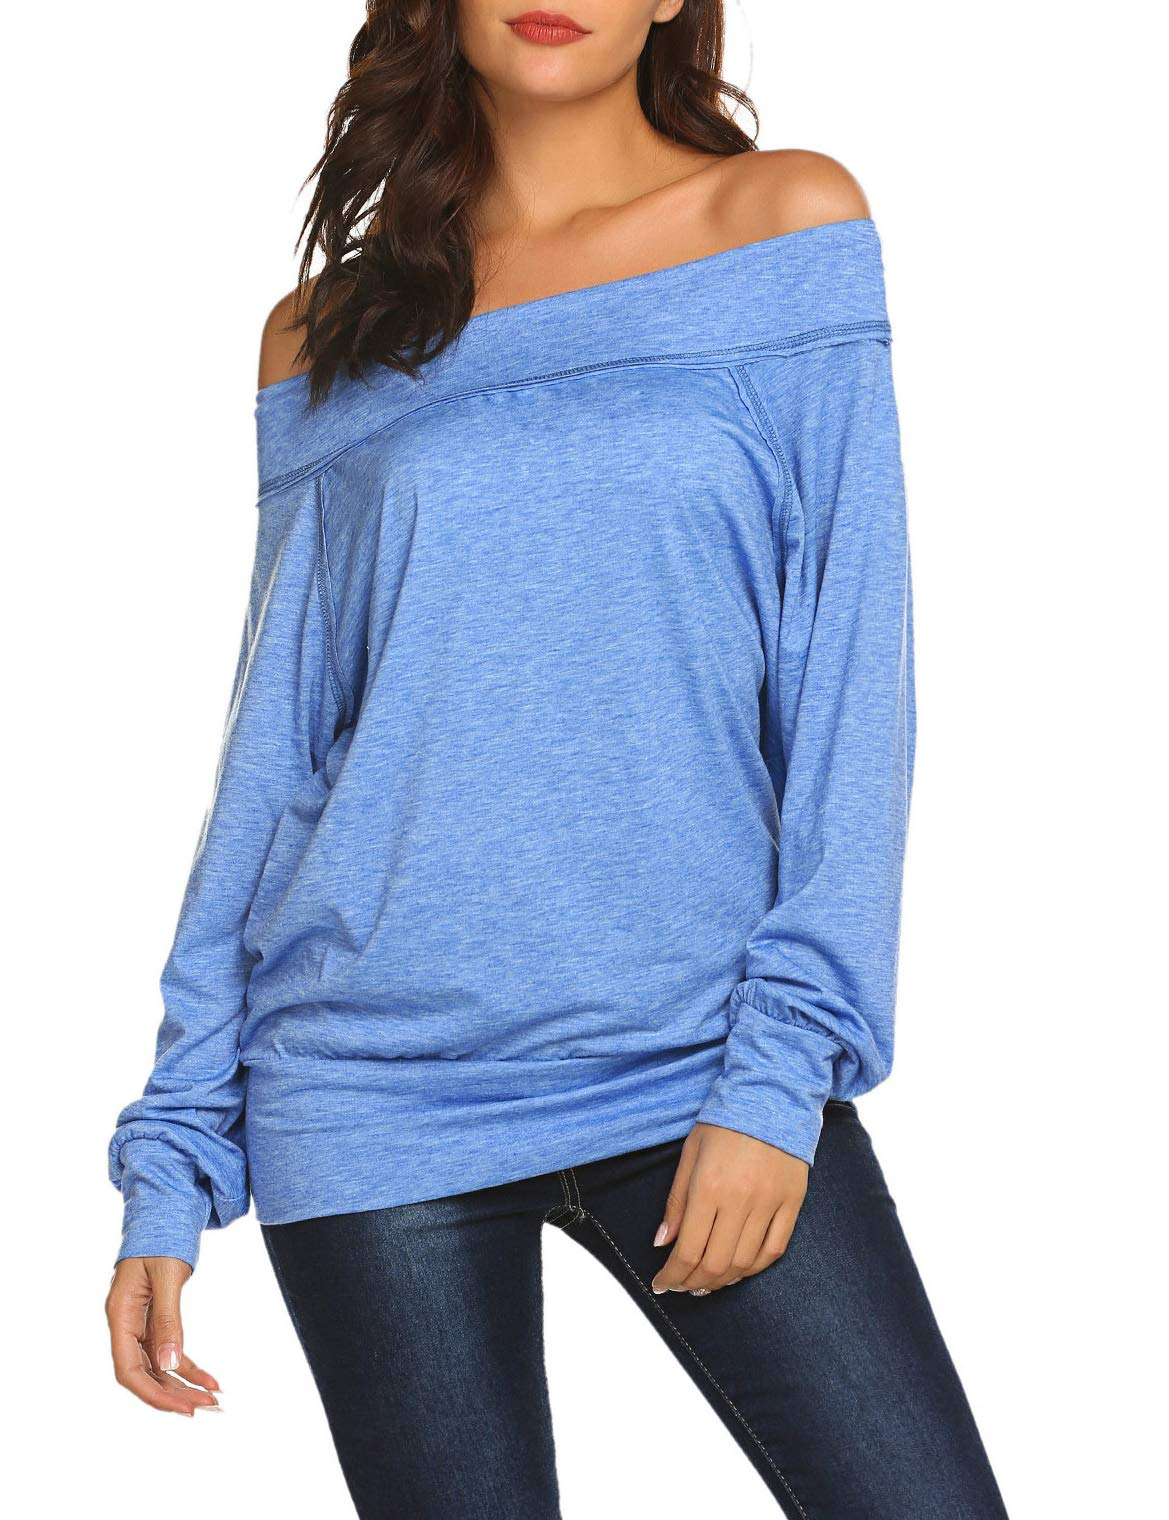 114312ec636a Long Sleeve T Shirts Womens Loose Fitting Blouse Off the Shoulder ...